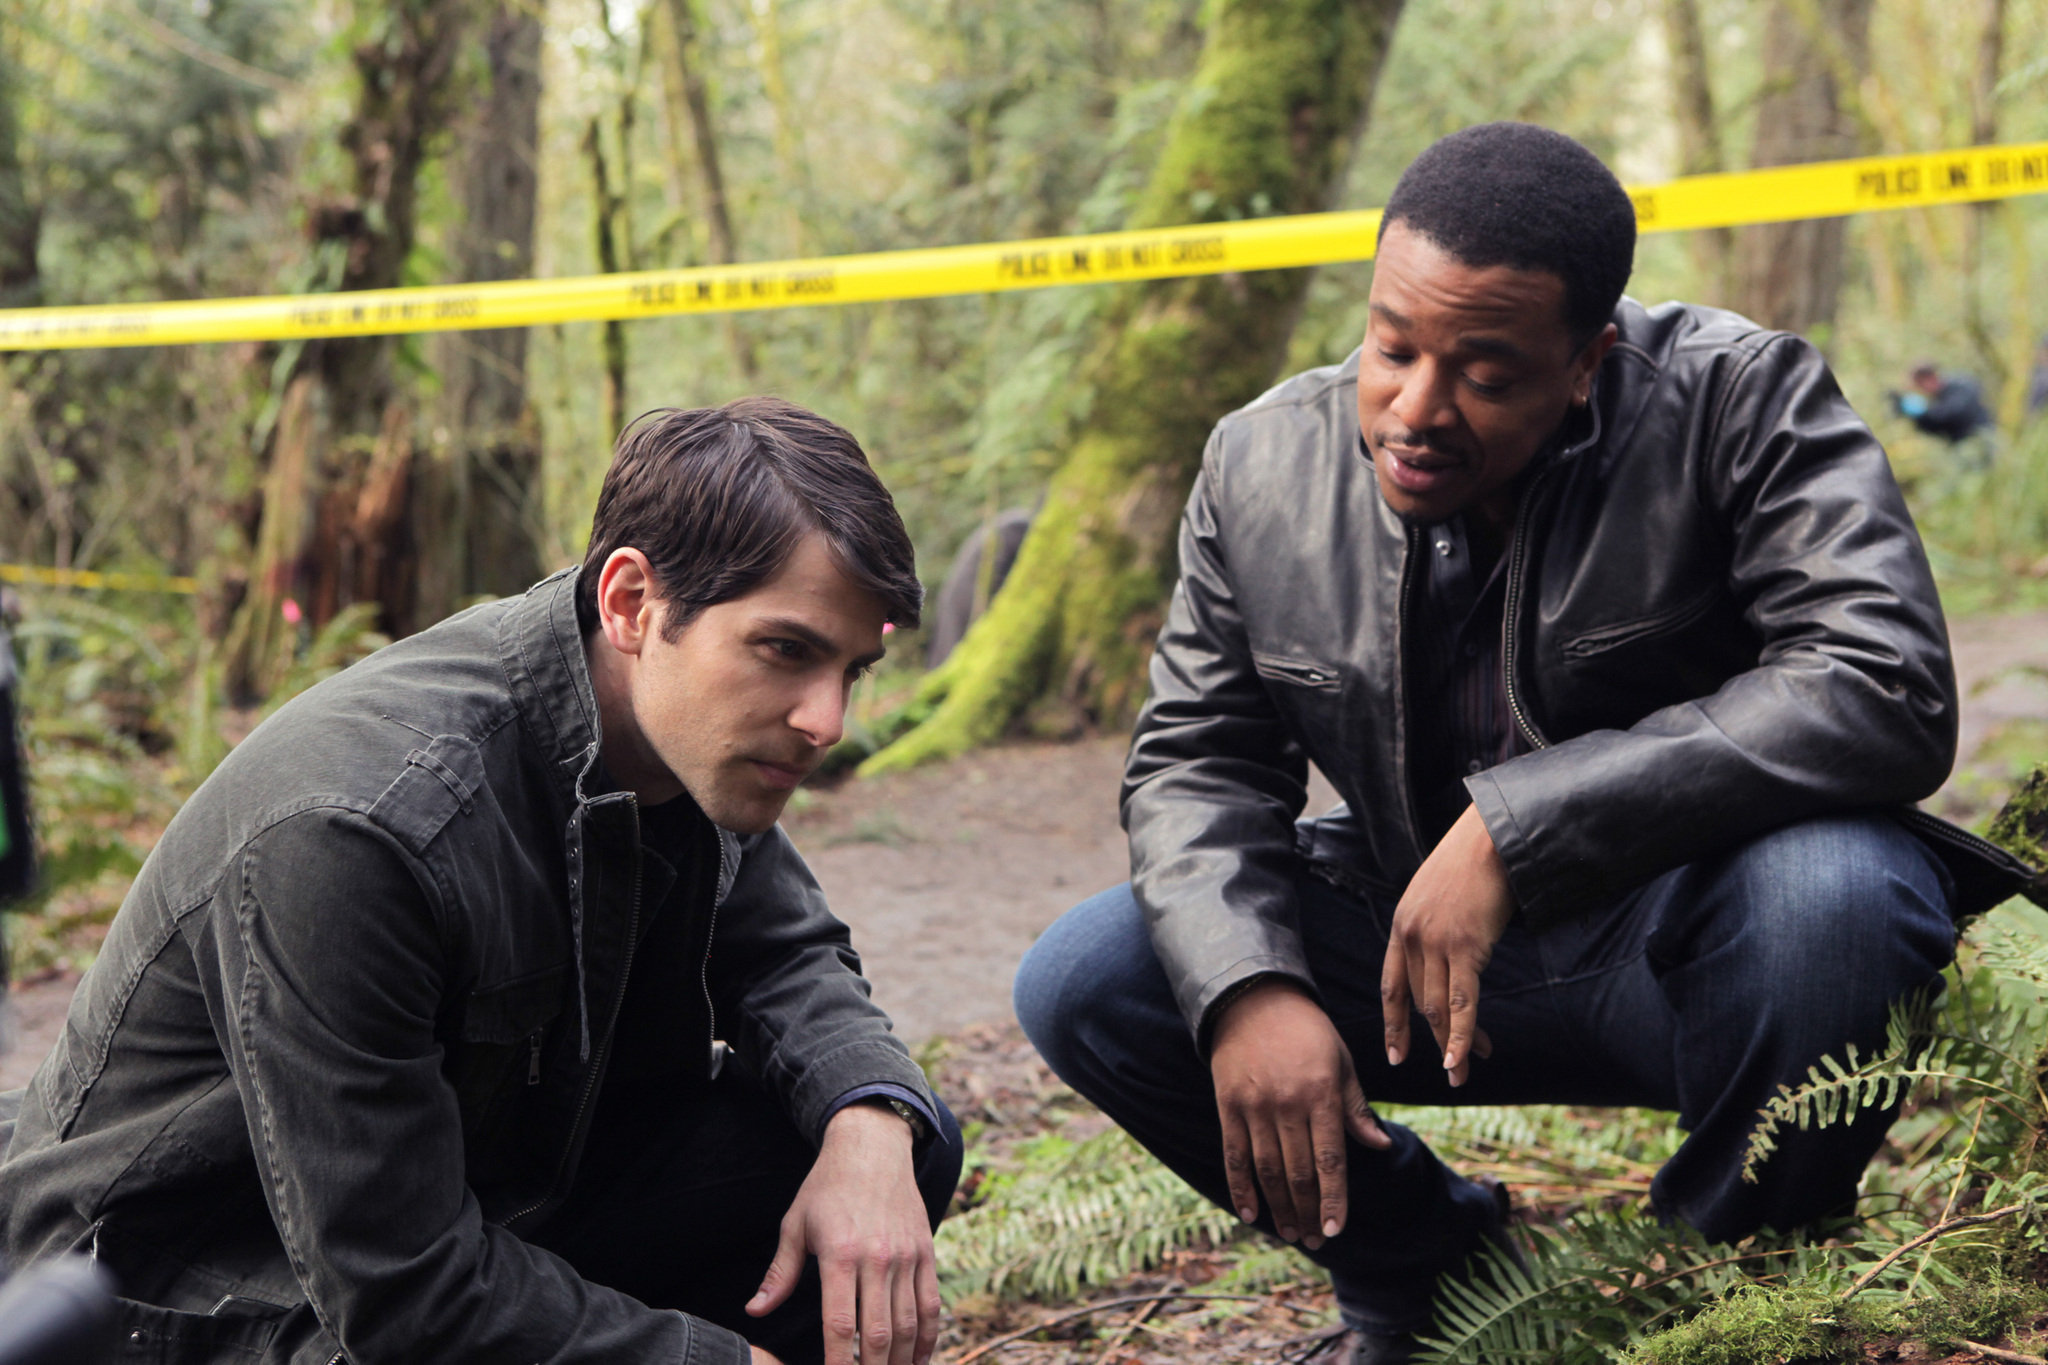 actor who plays full episodes of grimm on nbcTV Summer Press Tour 2011  Grimm producers cast talk about KyNDZRQp